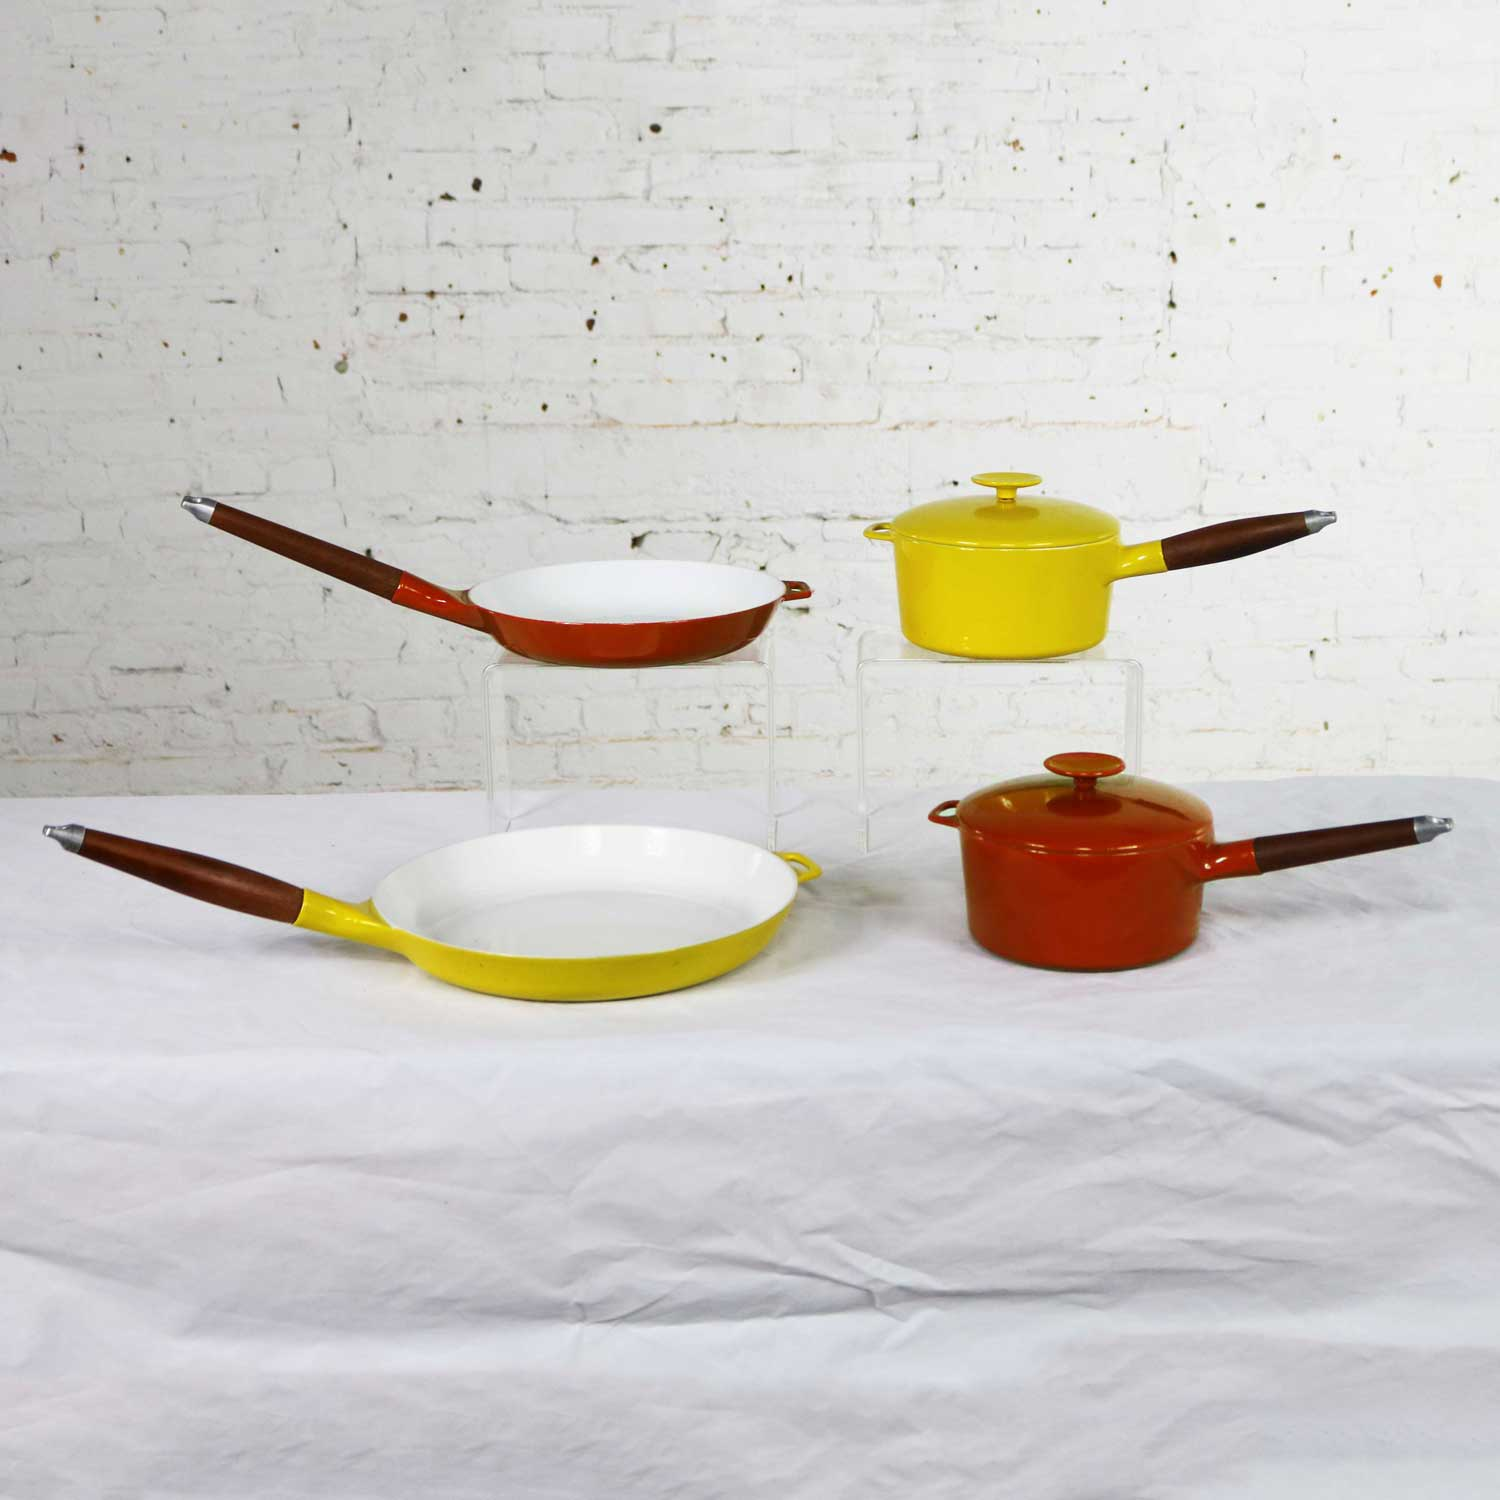 6 Pcs Mid Century Danish Modern Enameled Cast Iron Cookware by